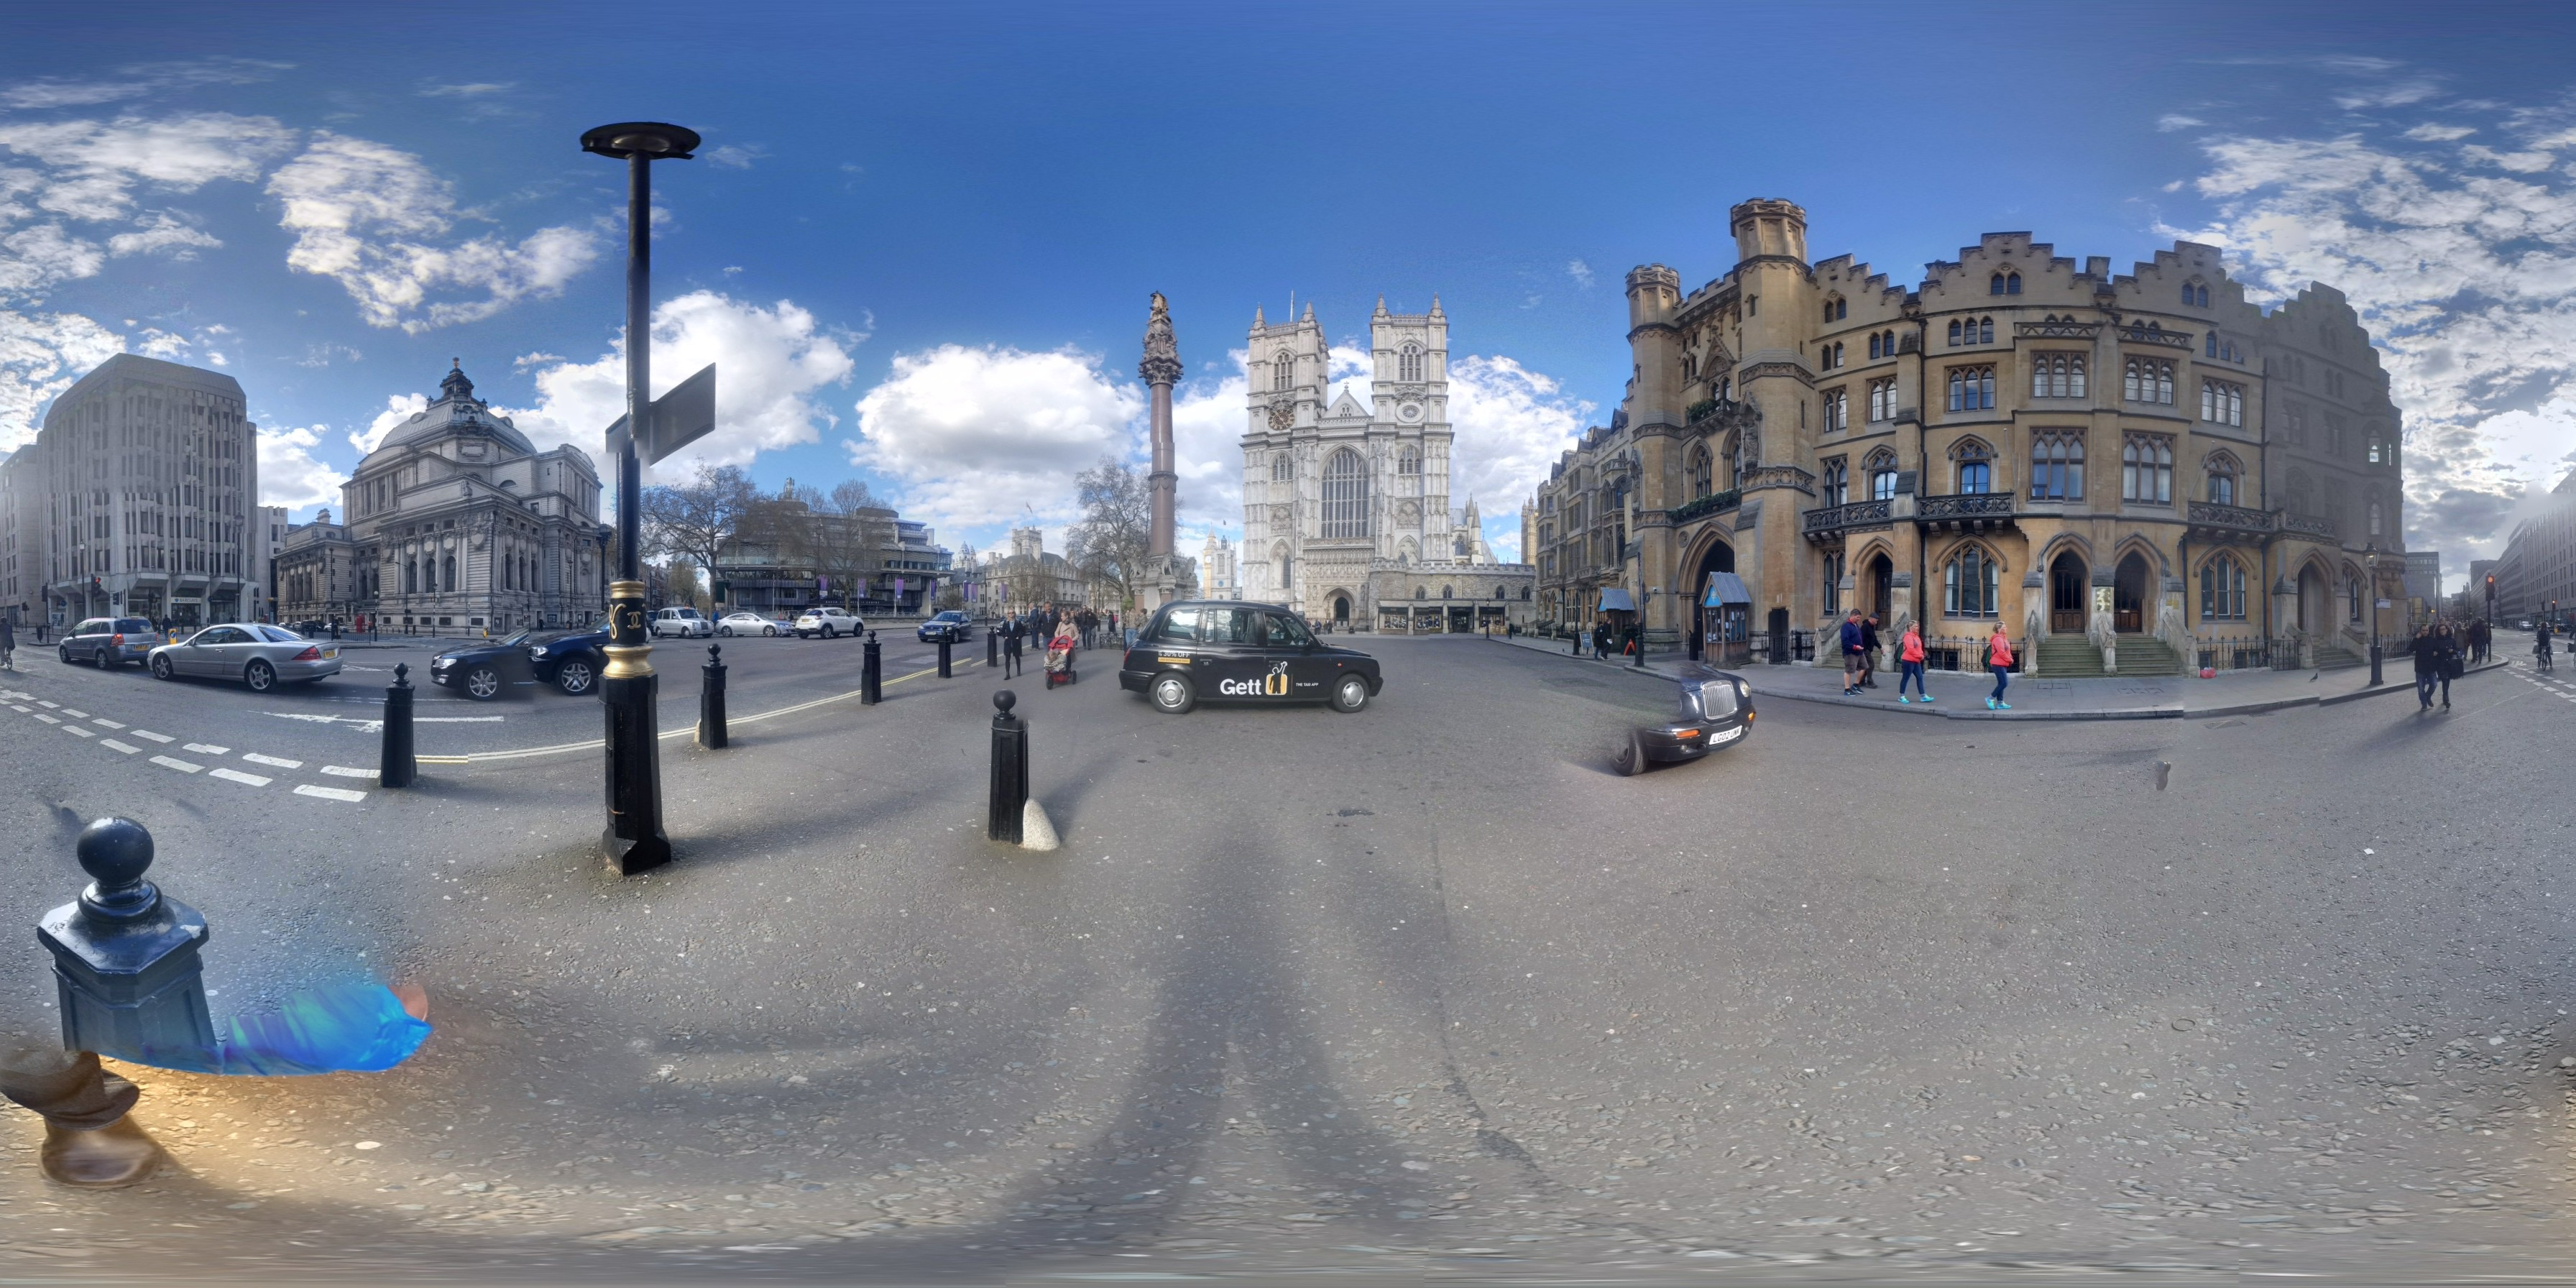 Credit One Contact >> File:360 panoramic view of Westminster Abbey, London, UK.jpg - Wikimedia Commons